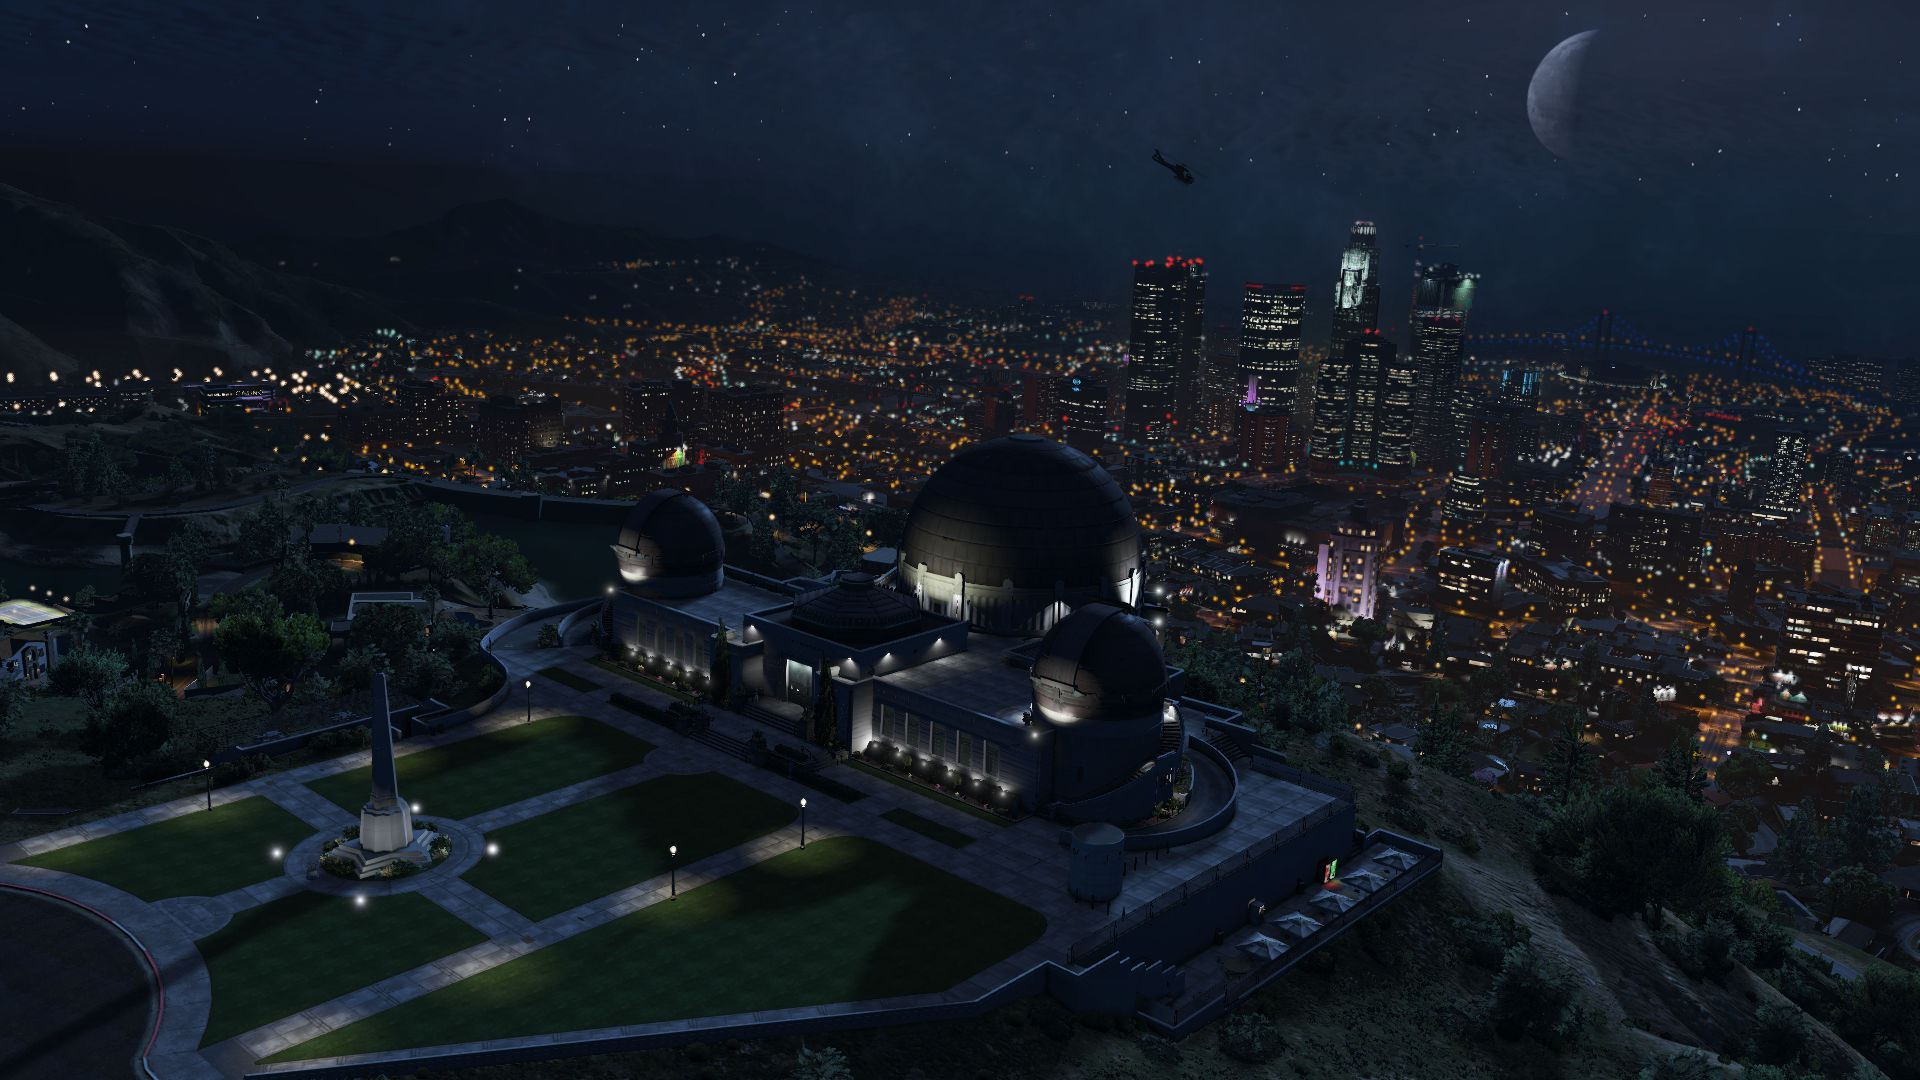 new and delightful screenshots from the 1080p next gen GTA V for PS4 ...